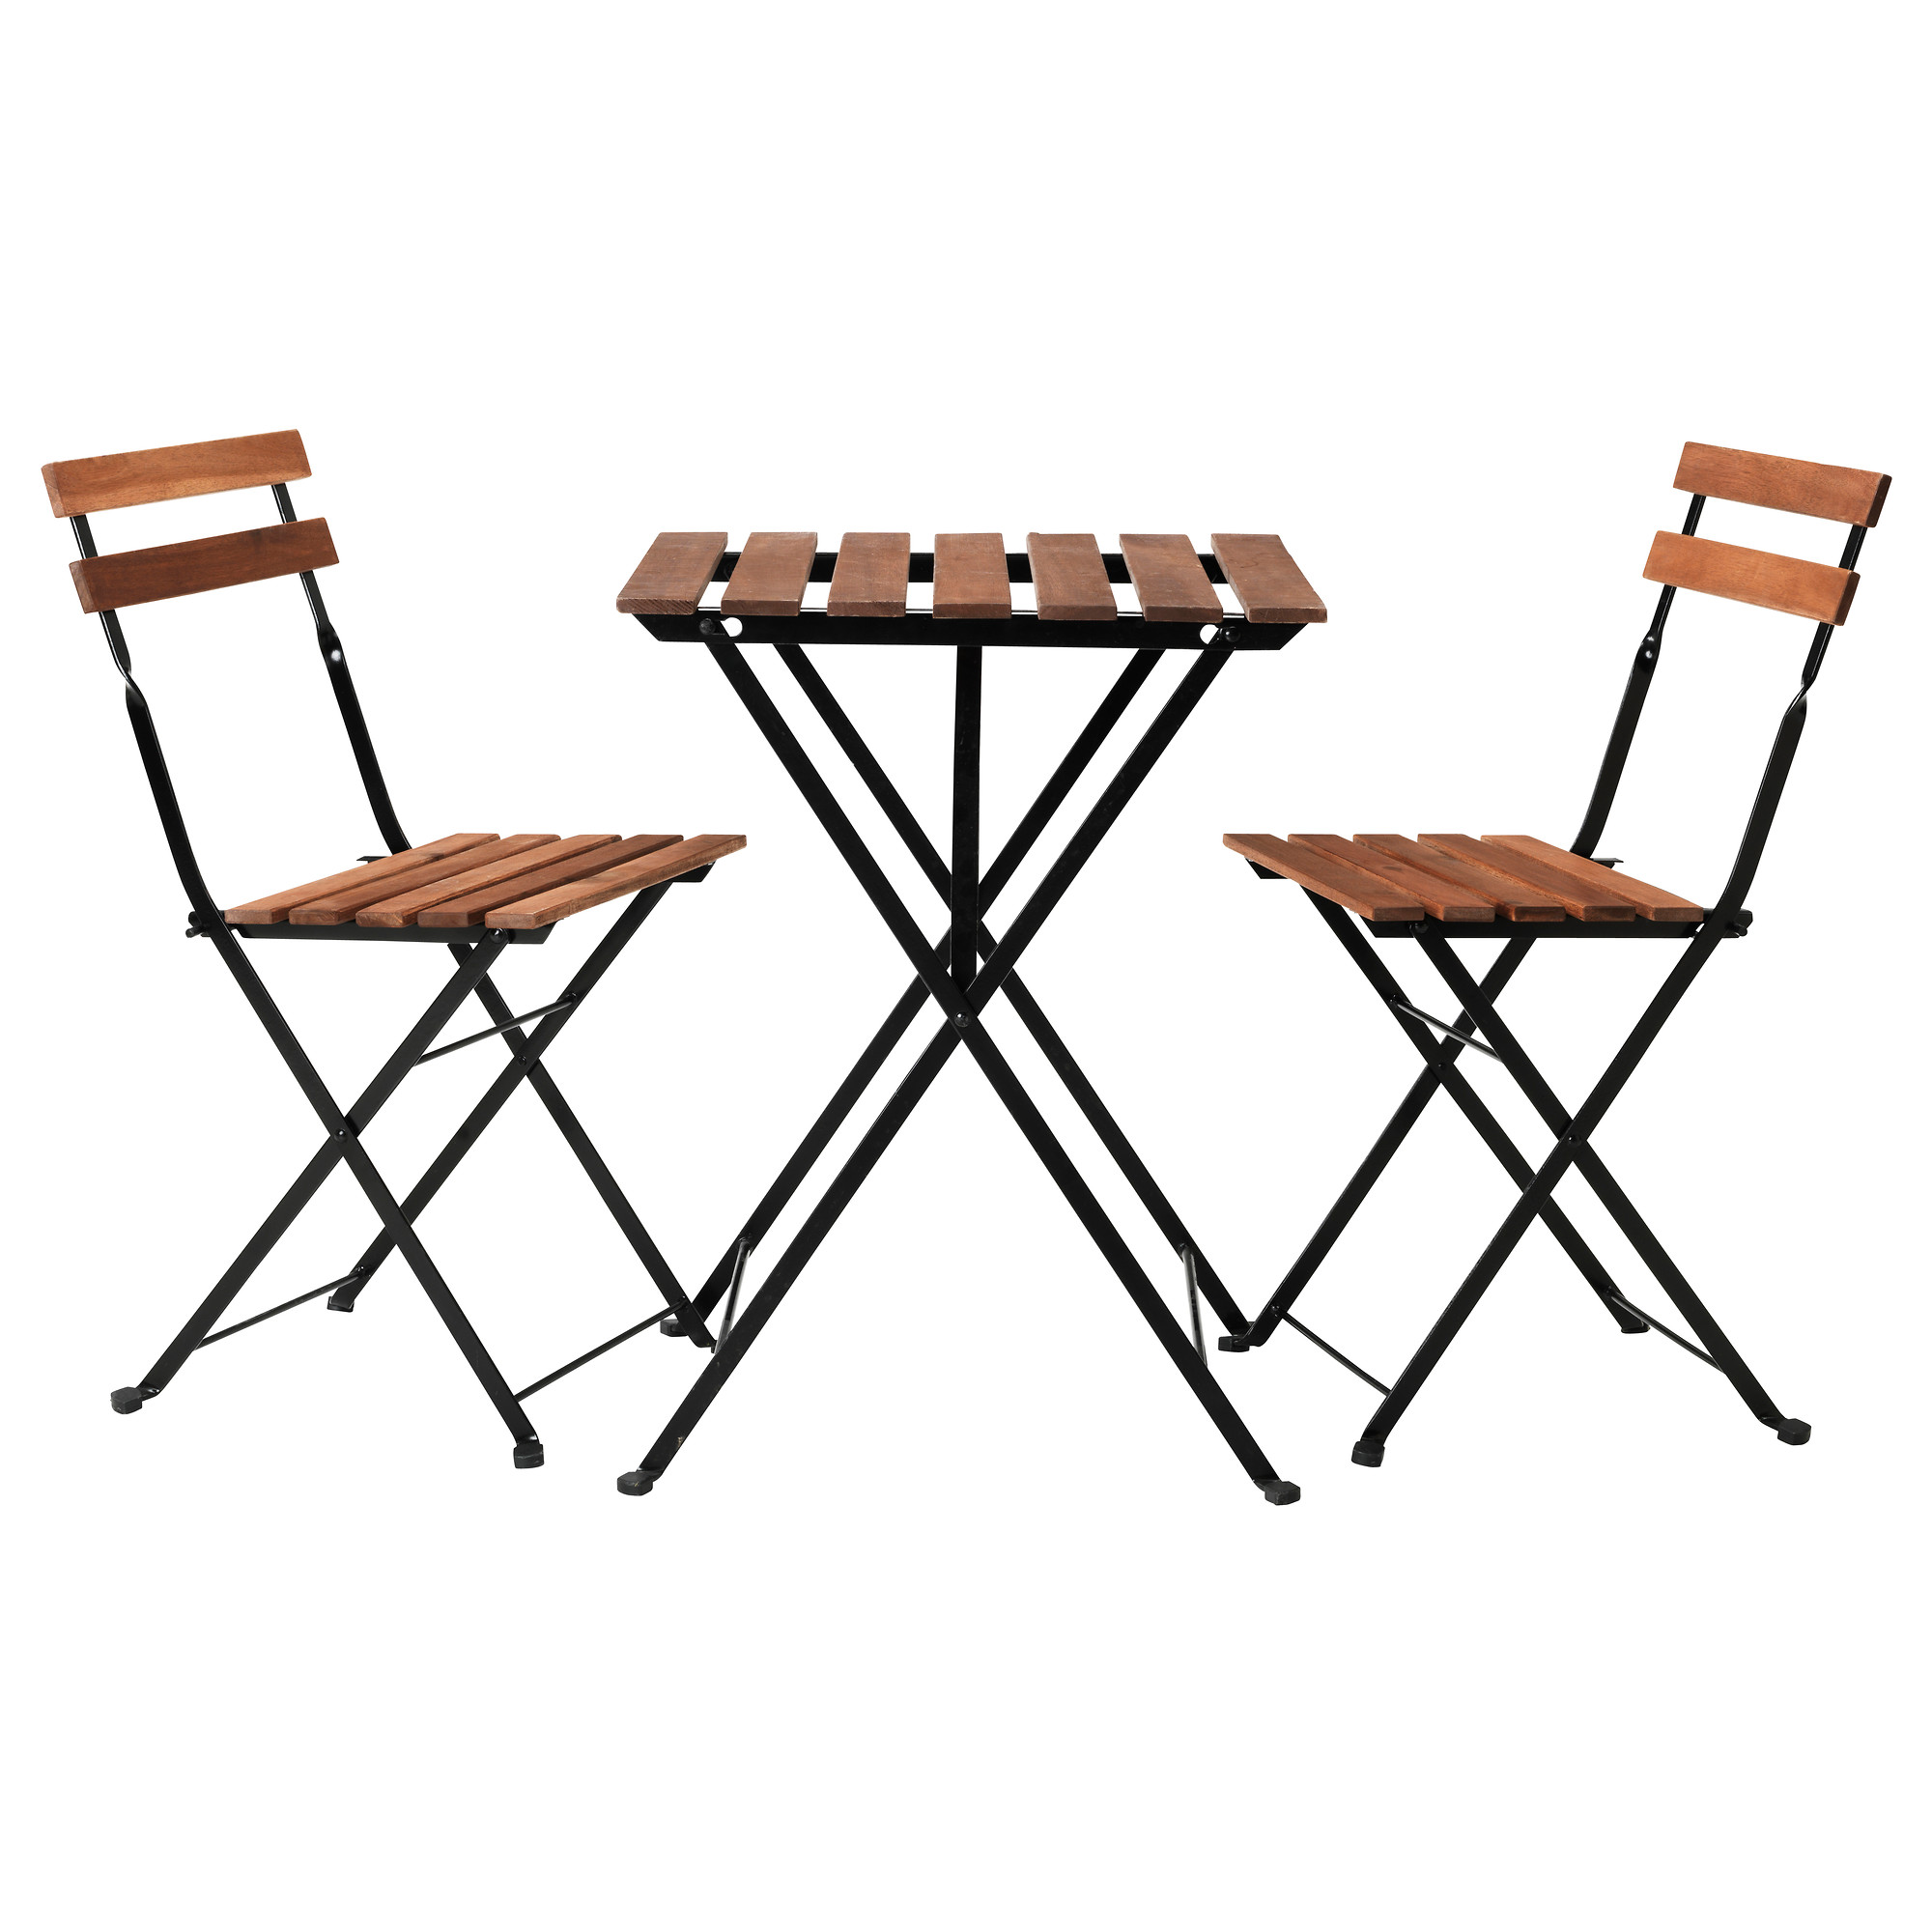 TÄrnÖ Table 2 Chairs Outdoor Black Acacia Steel Gray Brown Stained